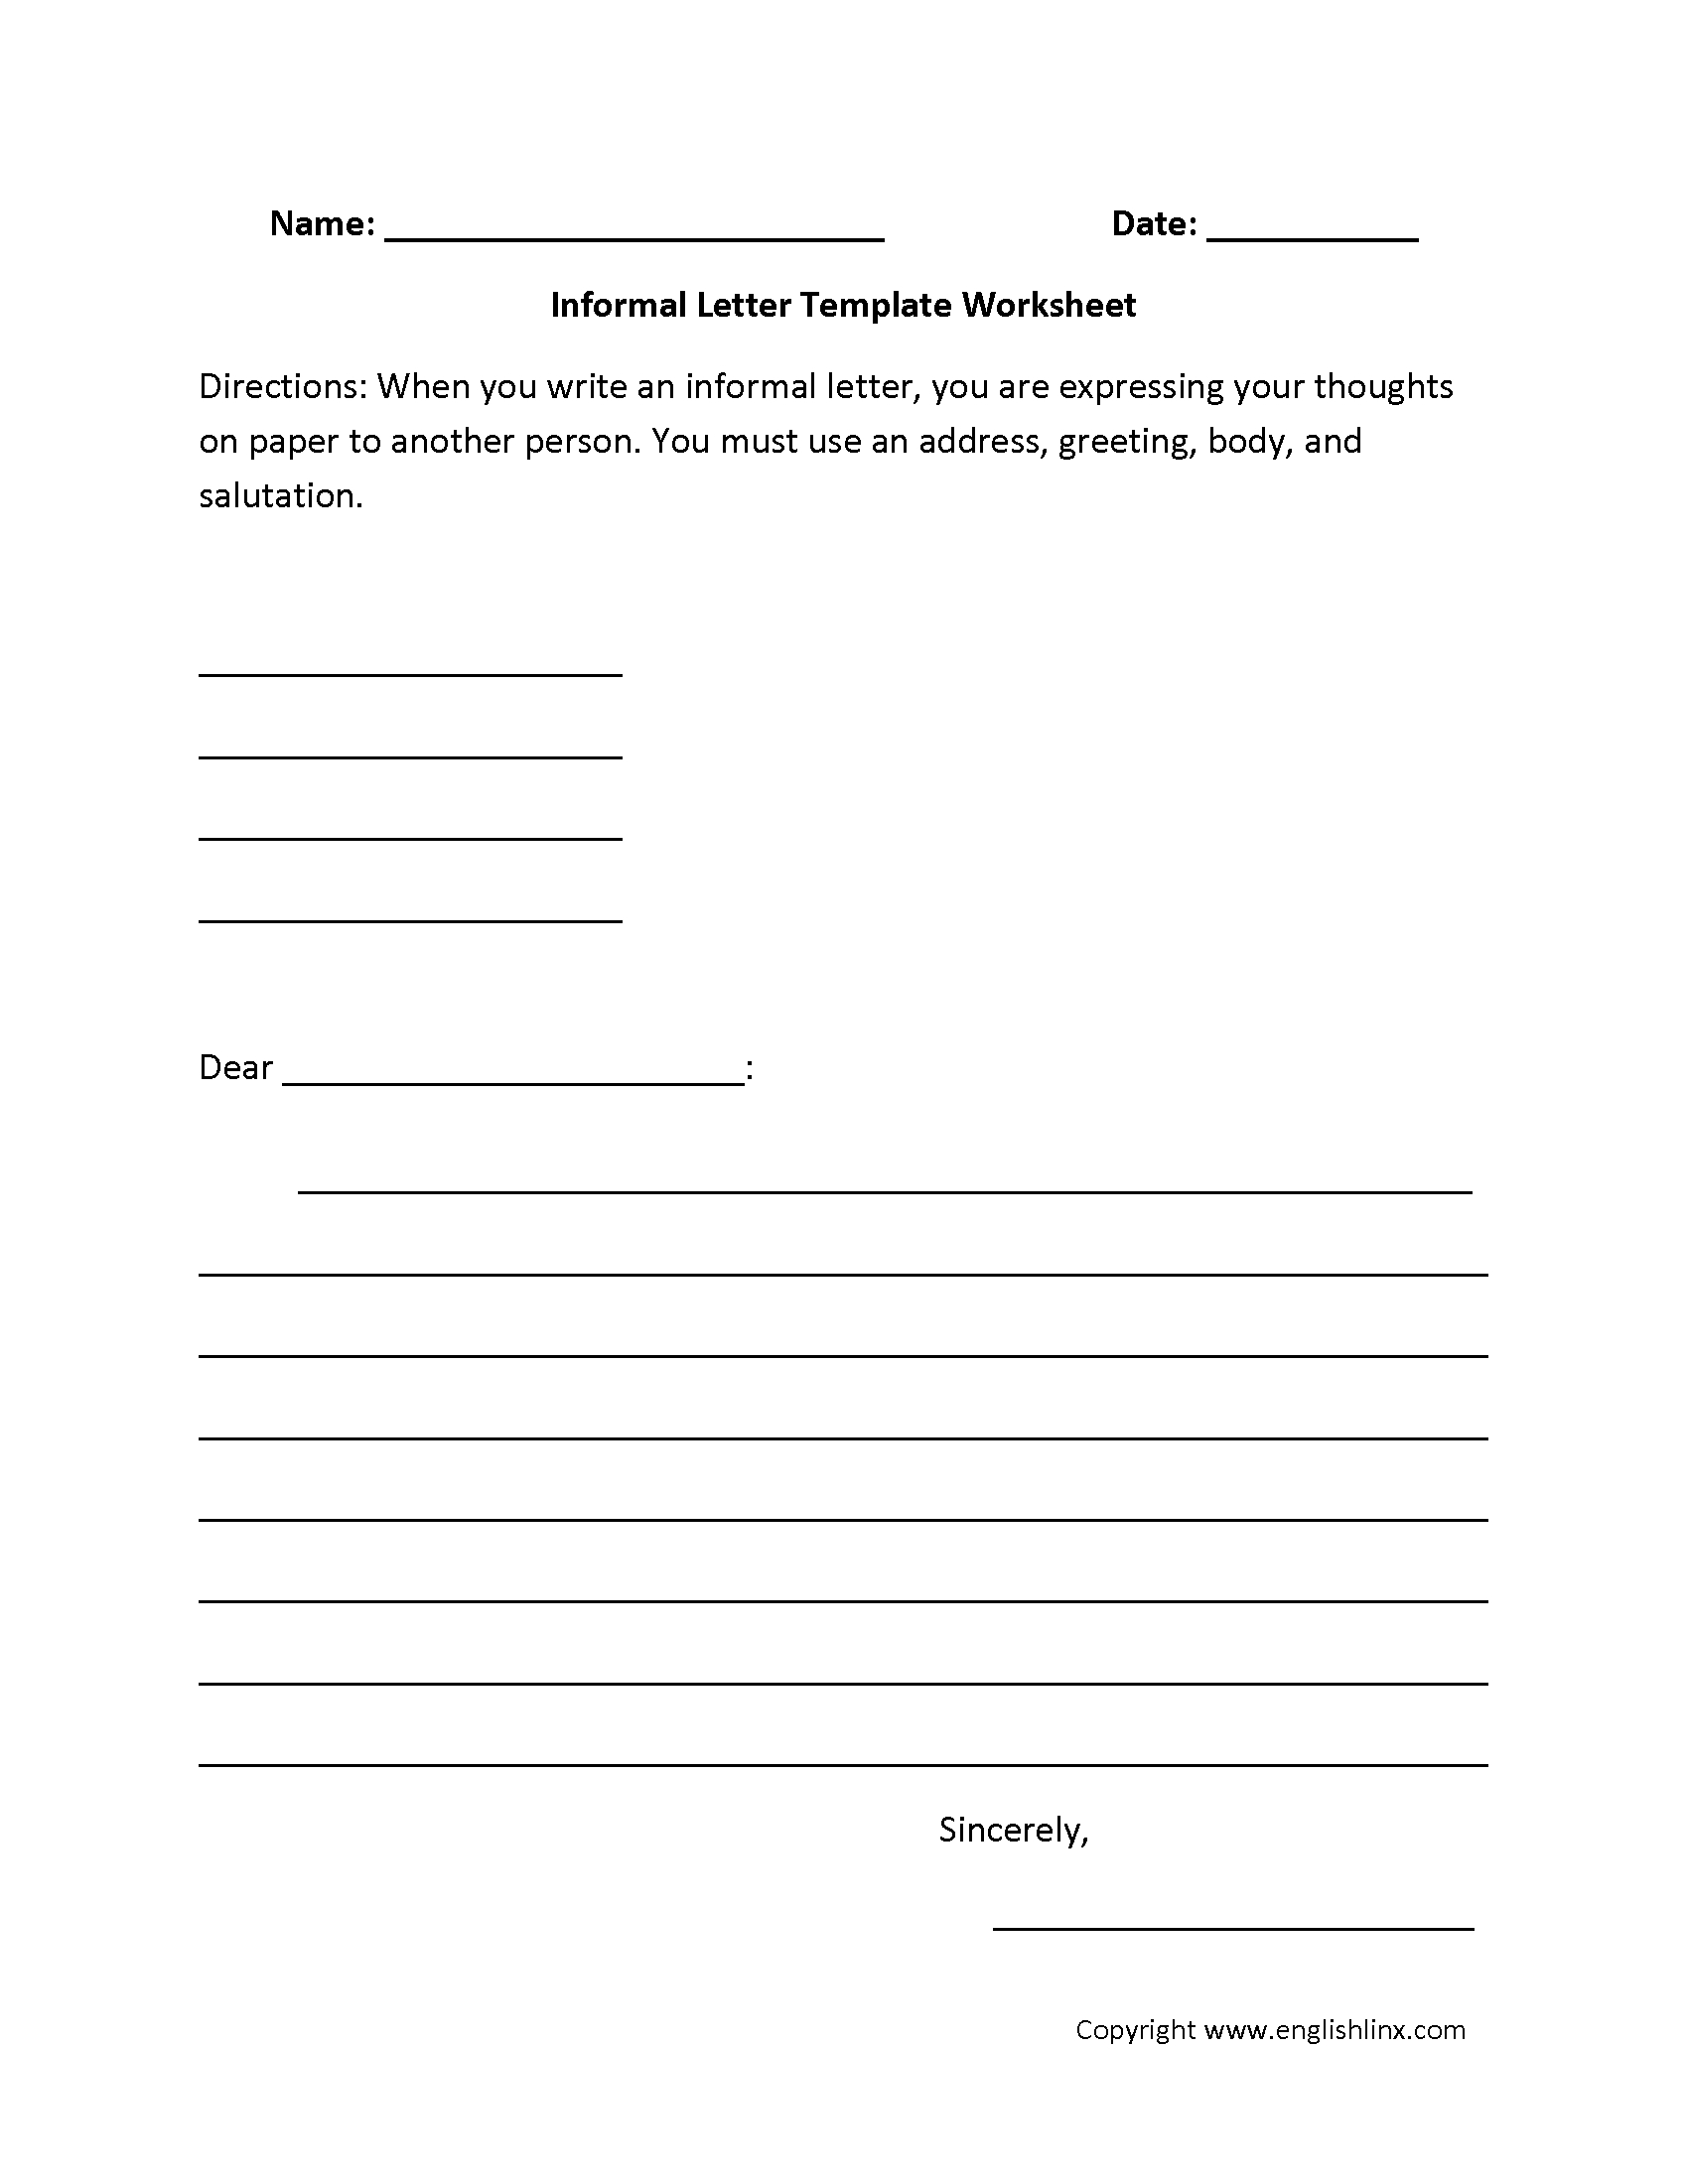 Writing Worksheets   Letter Writing Worksheets - Free Printable Letter Writing Worksheets